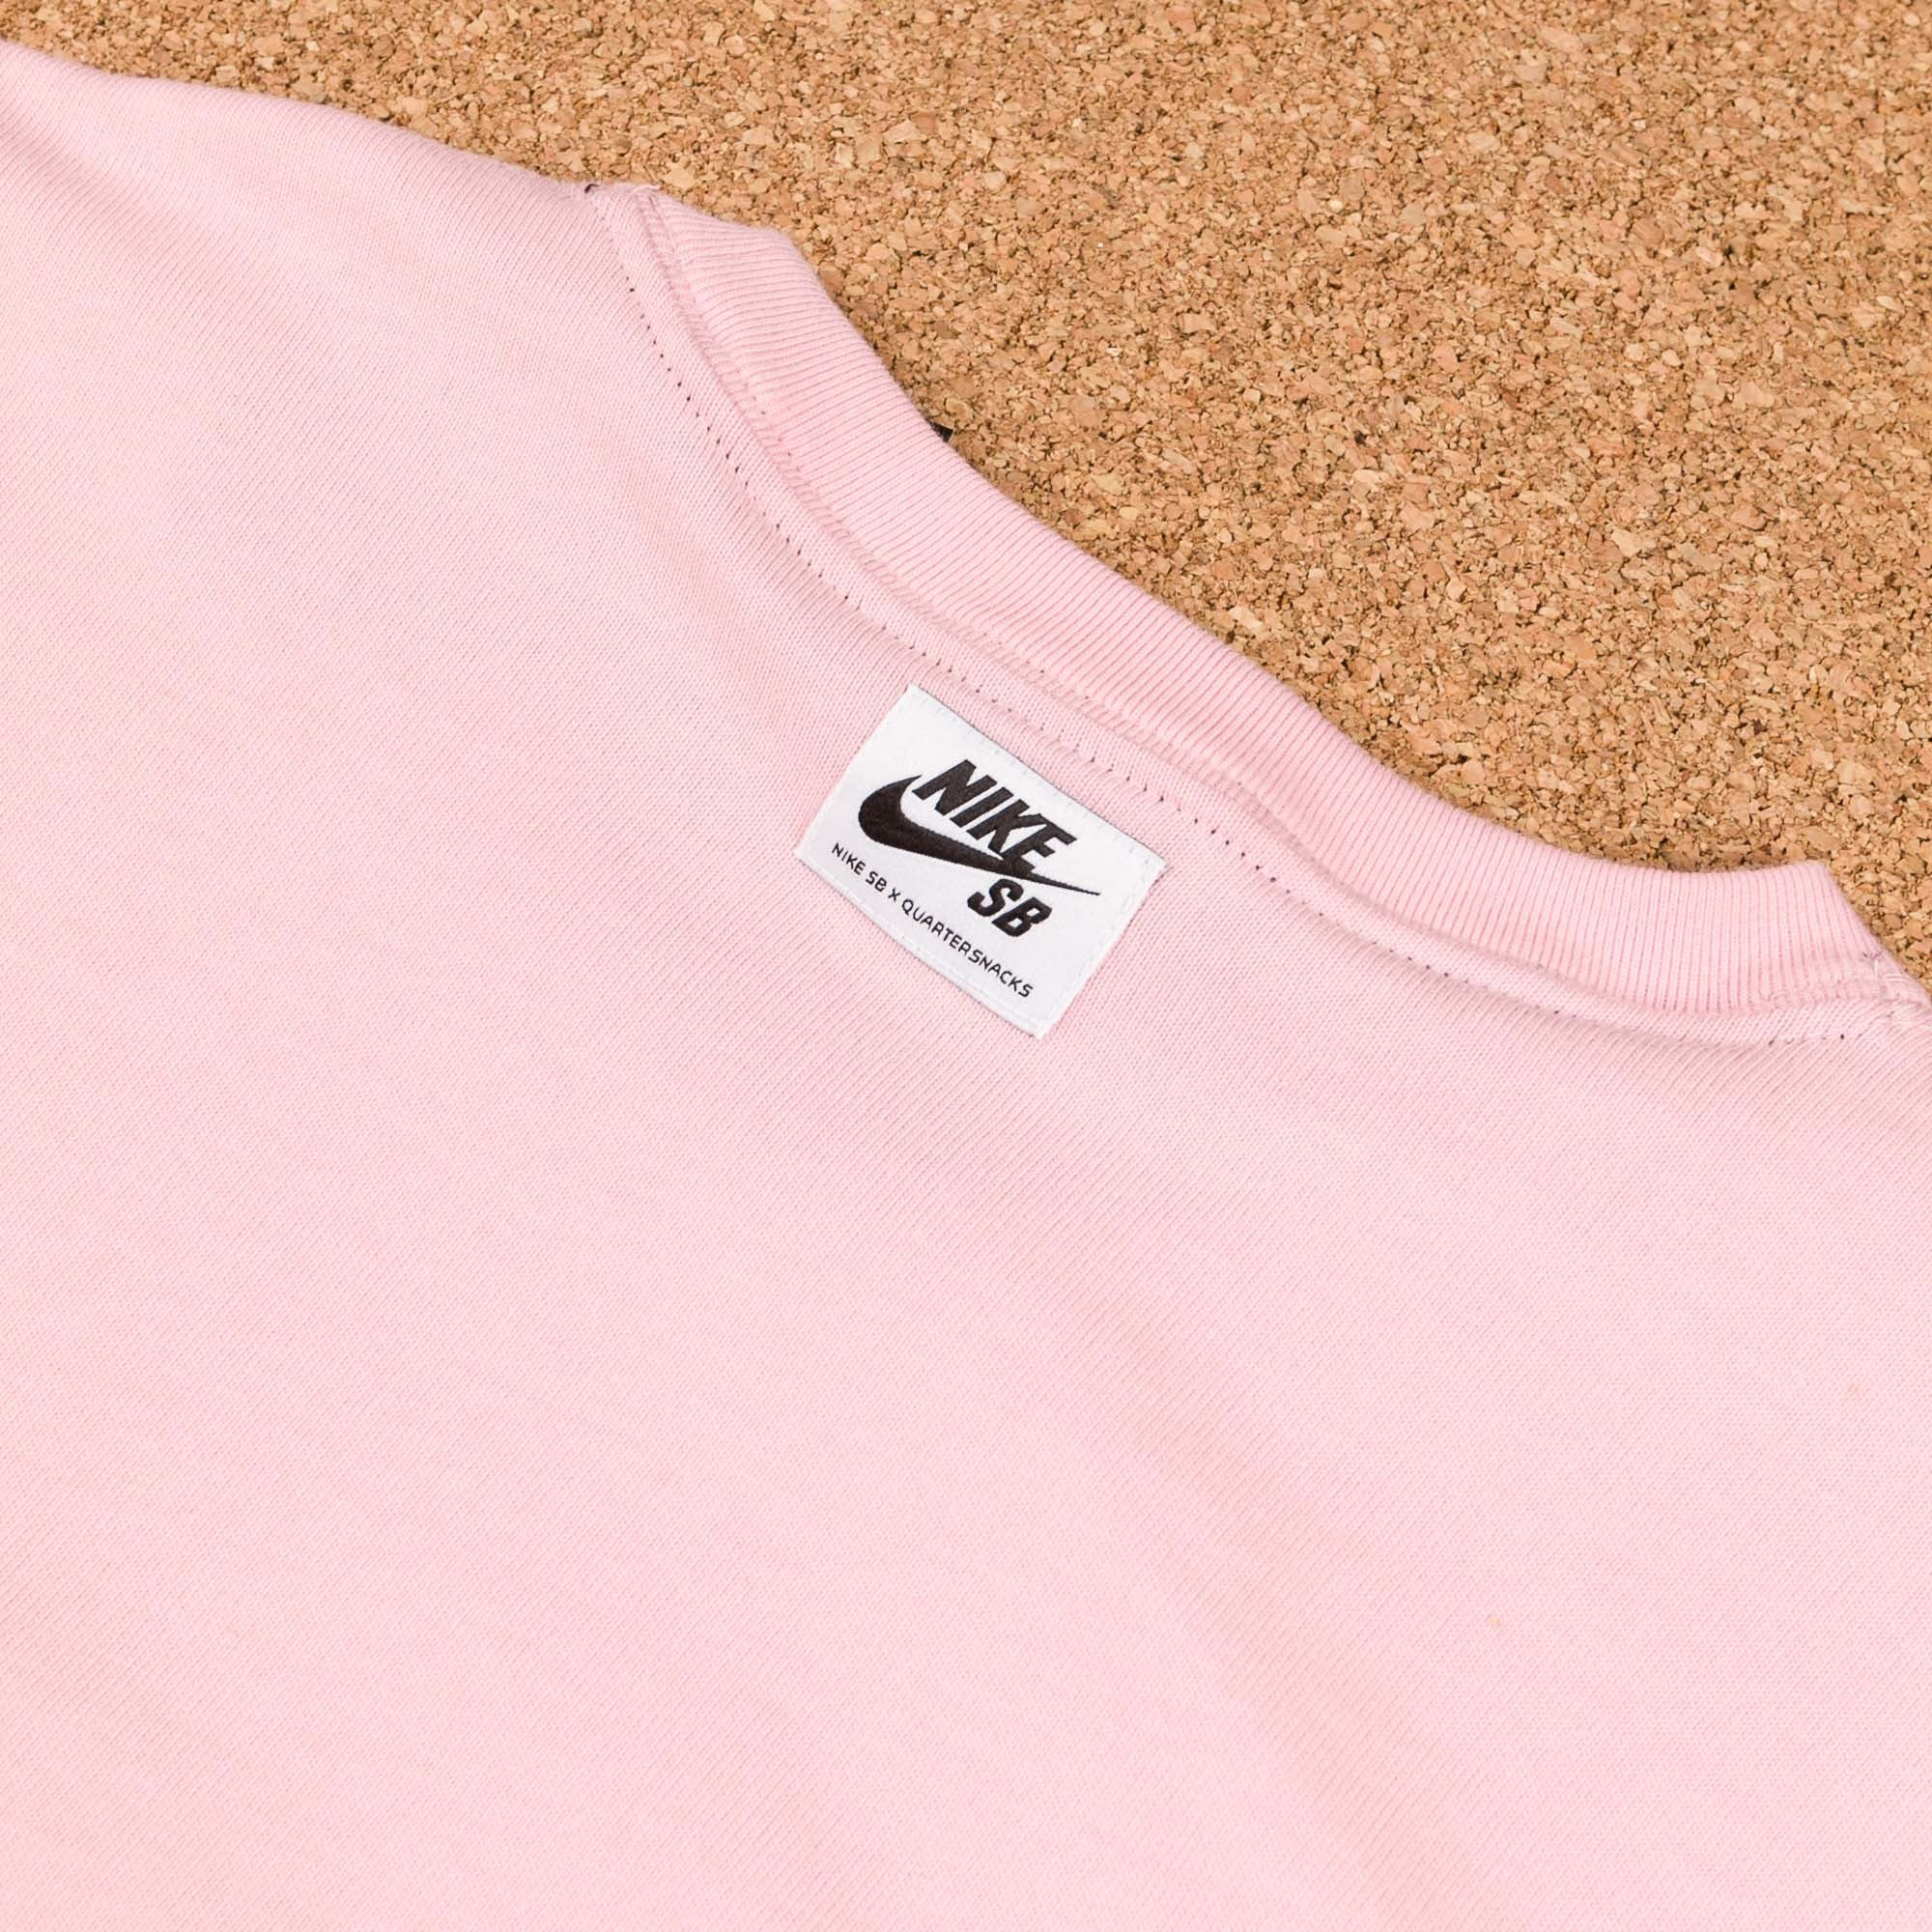 Nike SB x Quartersnacks Long Sleeve T-Shirt - Sheen / Ivory